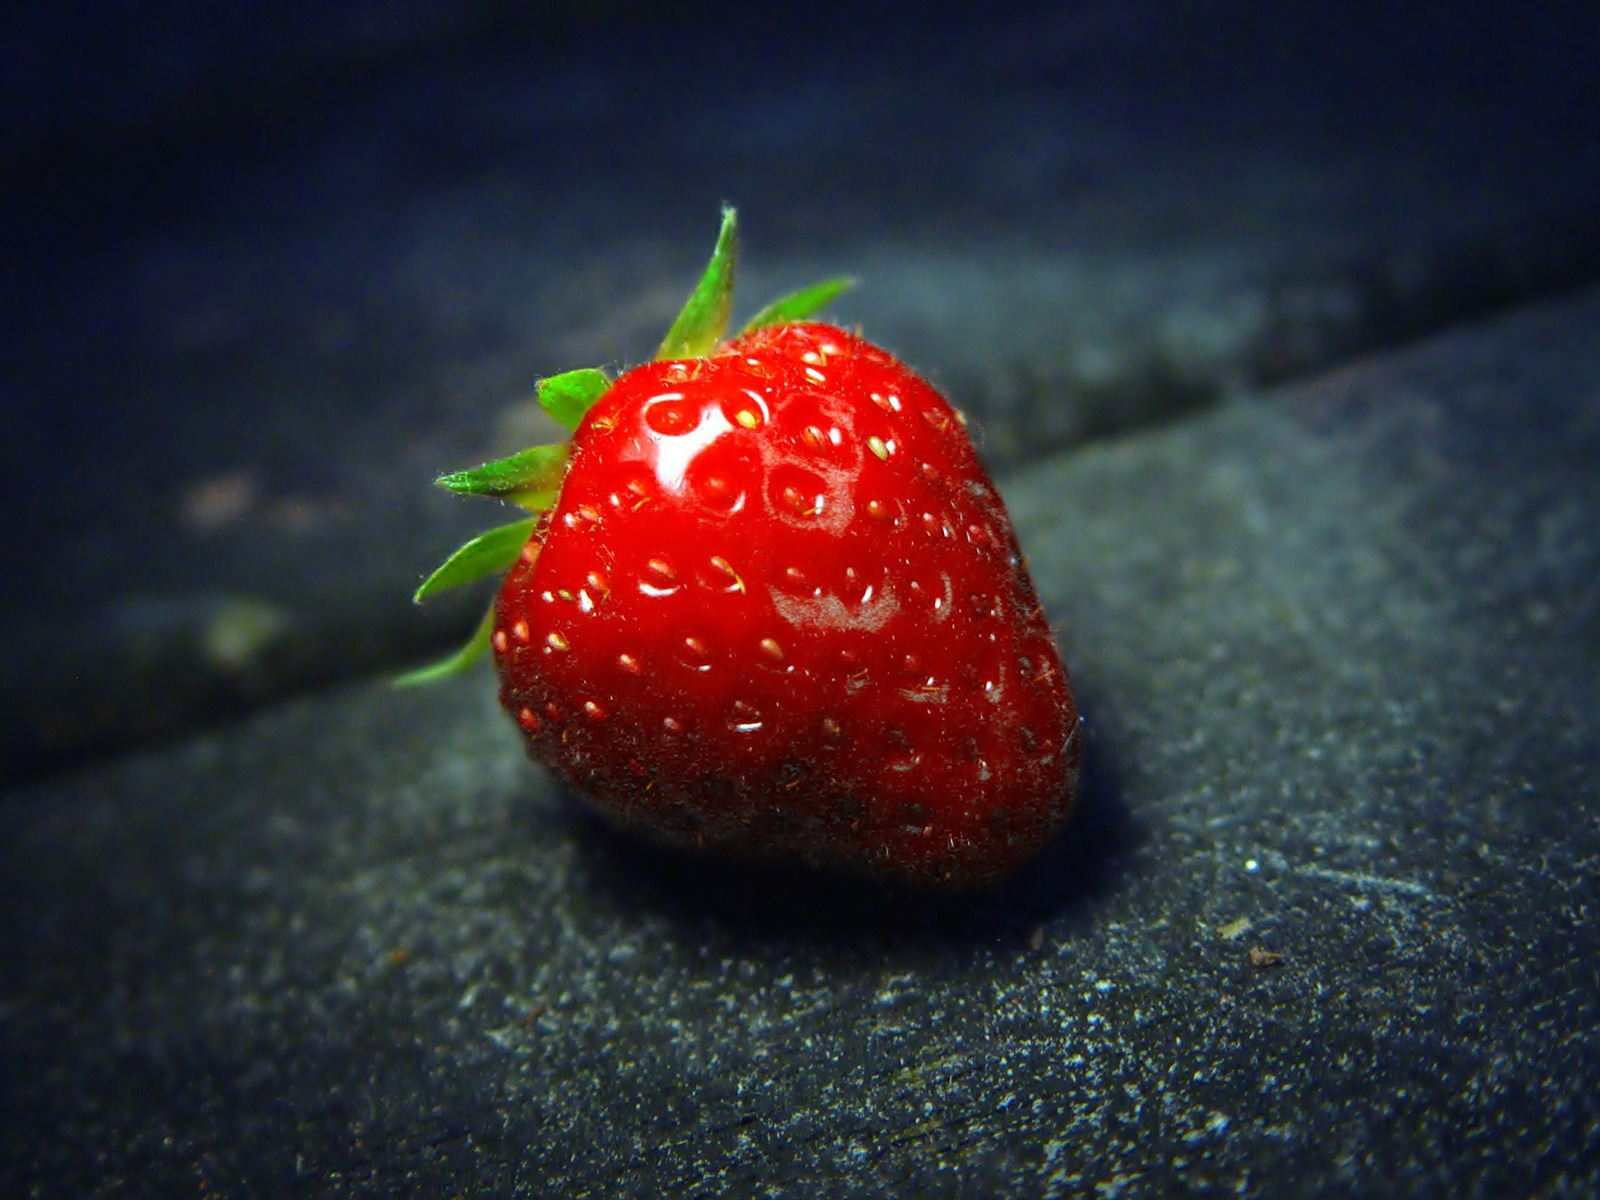 The Strawberry for 1600 x 1200 resolution